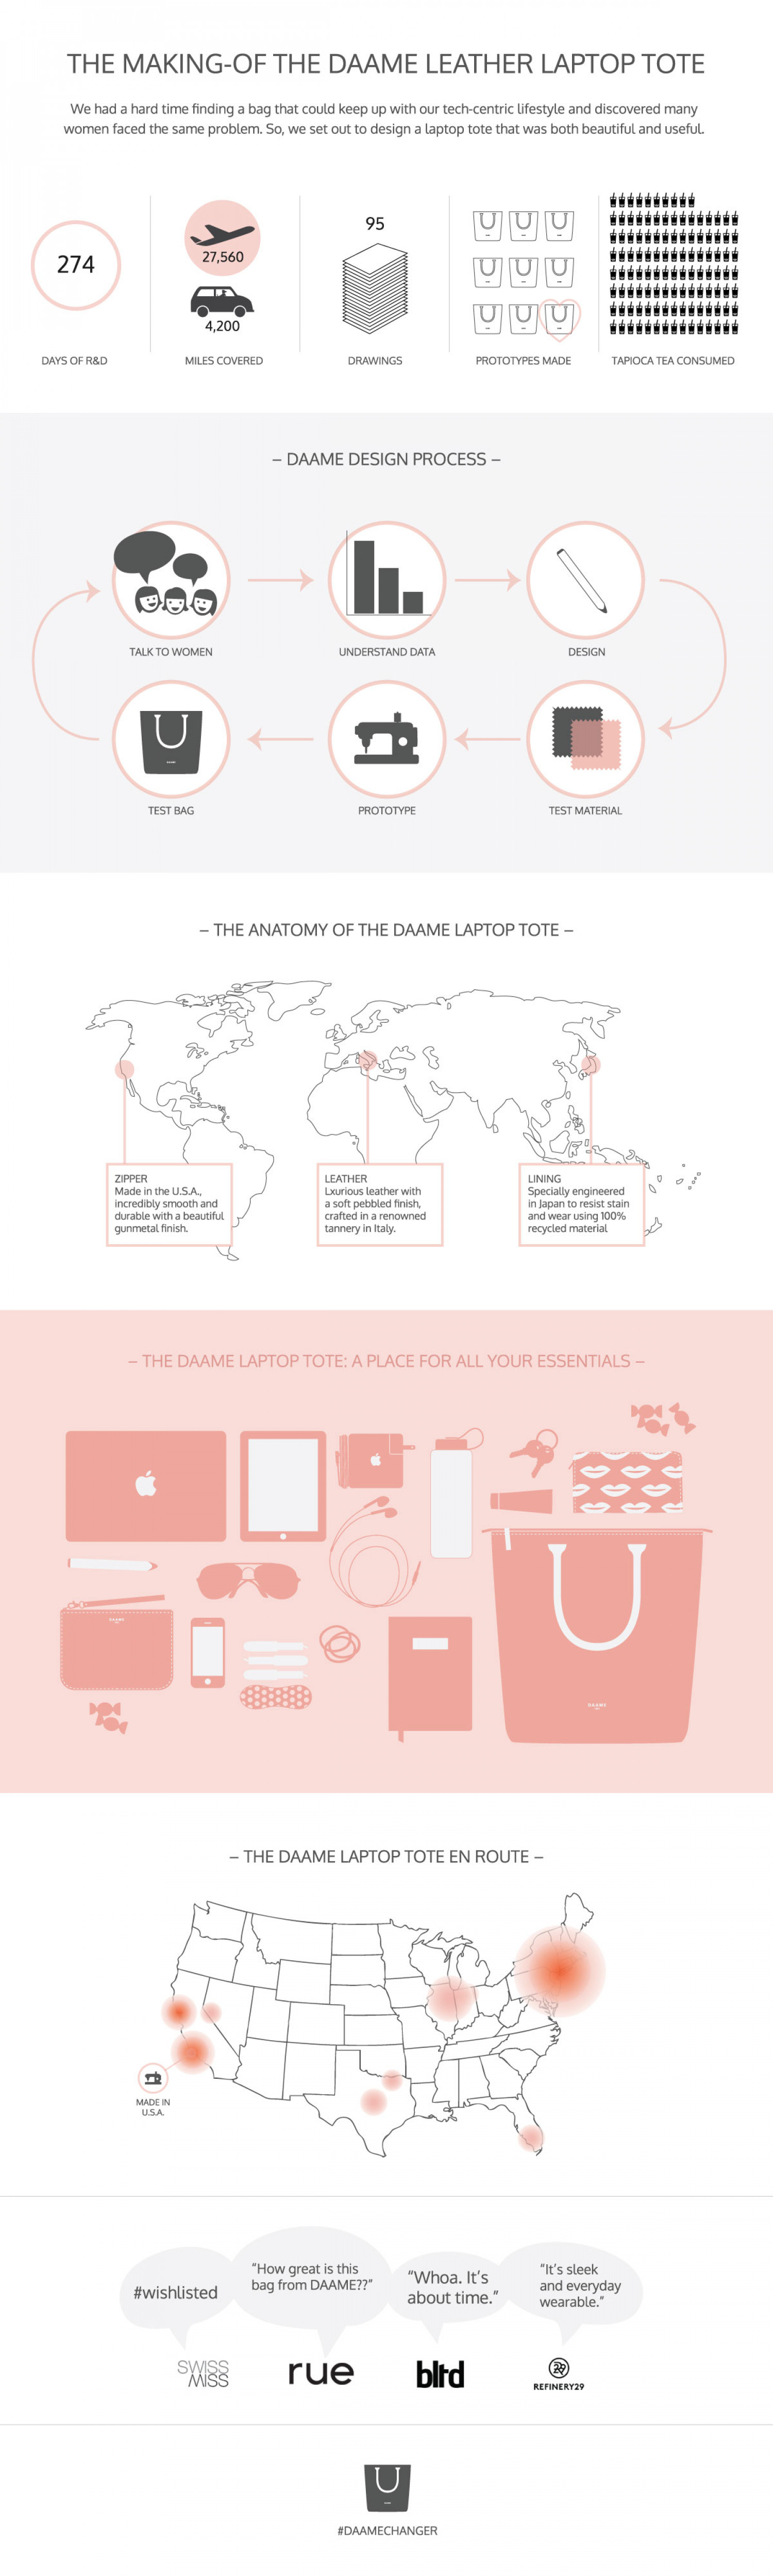 The Making-of the DAAME Laptop Tote Infographic